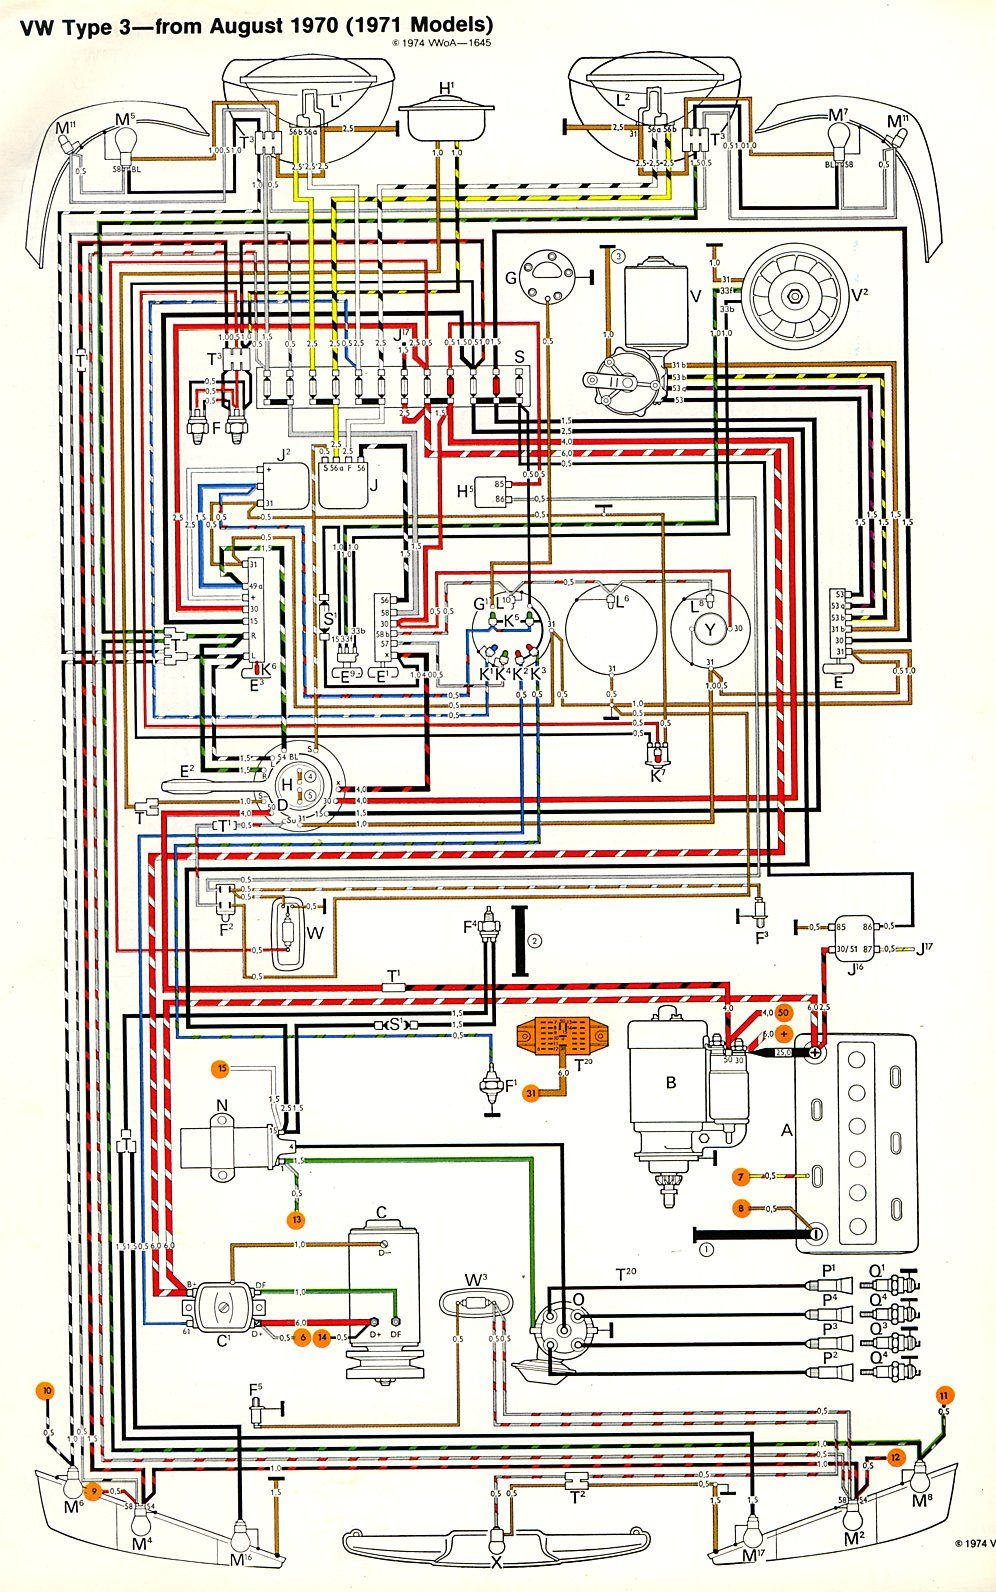 Vw Wiring Diagrams Free Diagram Fuse Box Volkswagen 71 Harness Diy Enthusiasts U2022 Rh Okdrywall Co 1974 Alternator T4